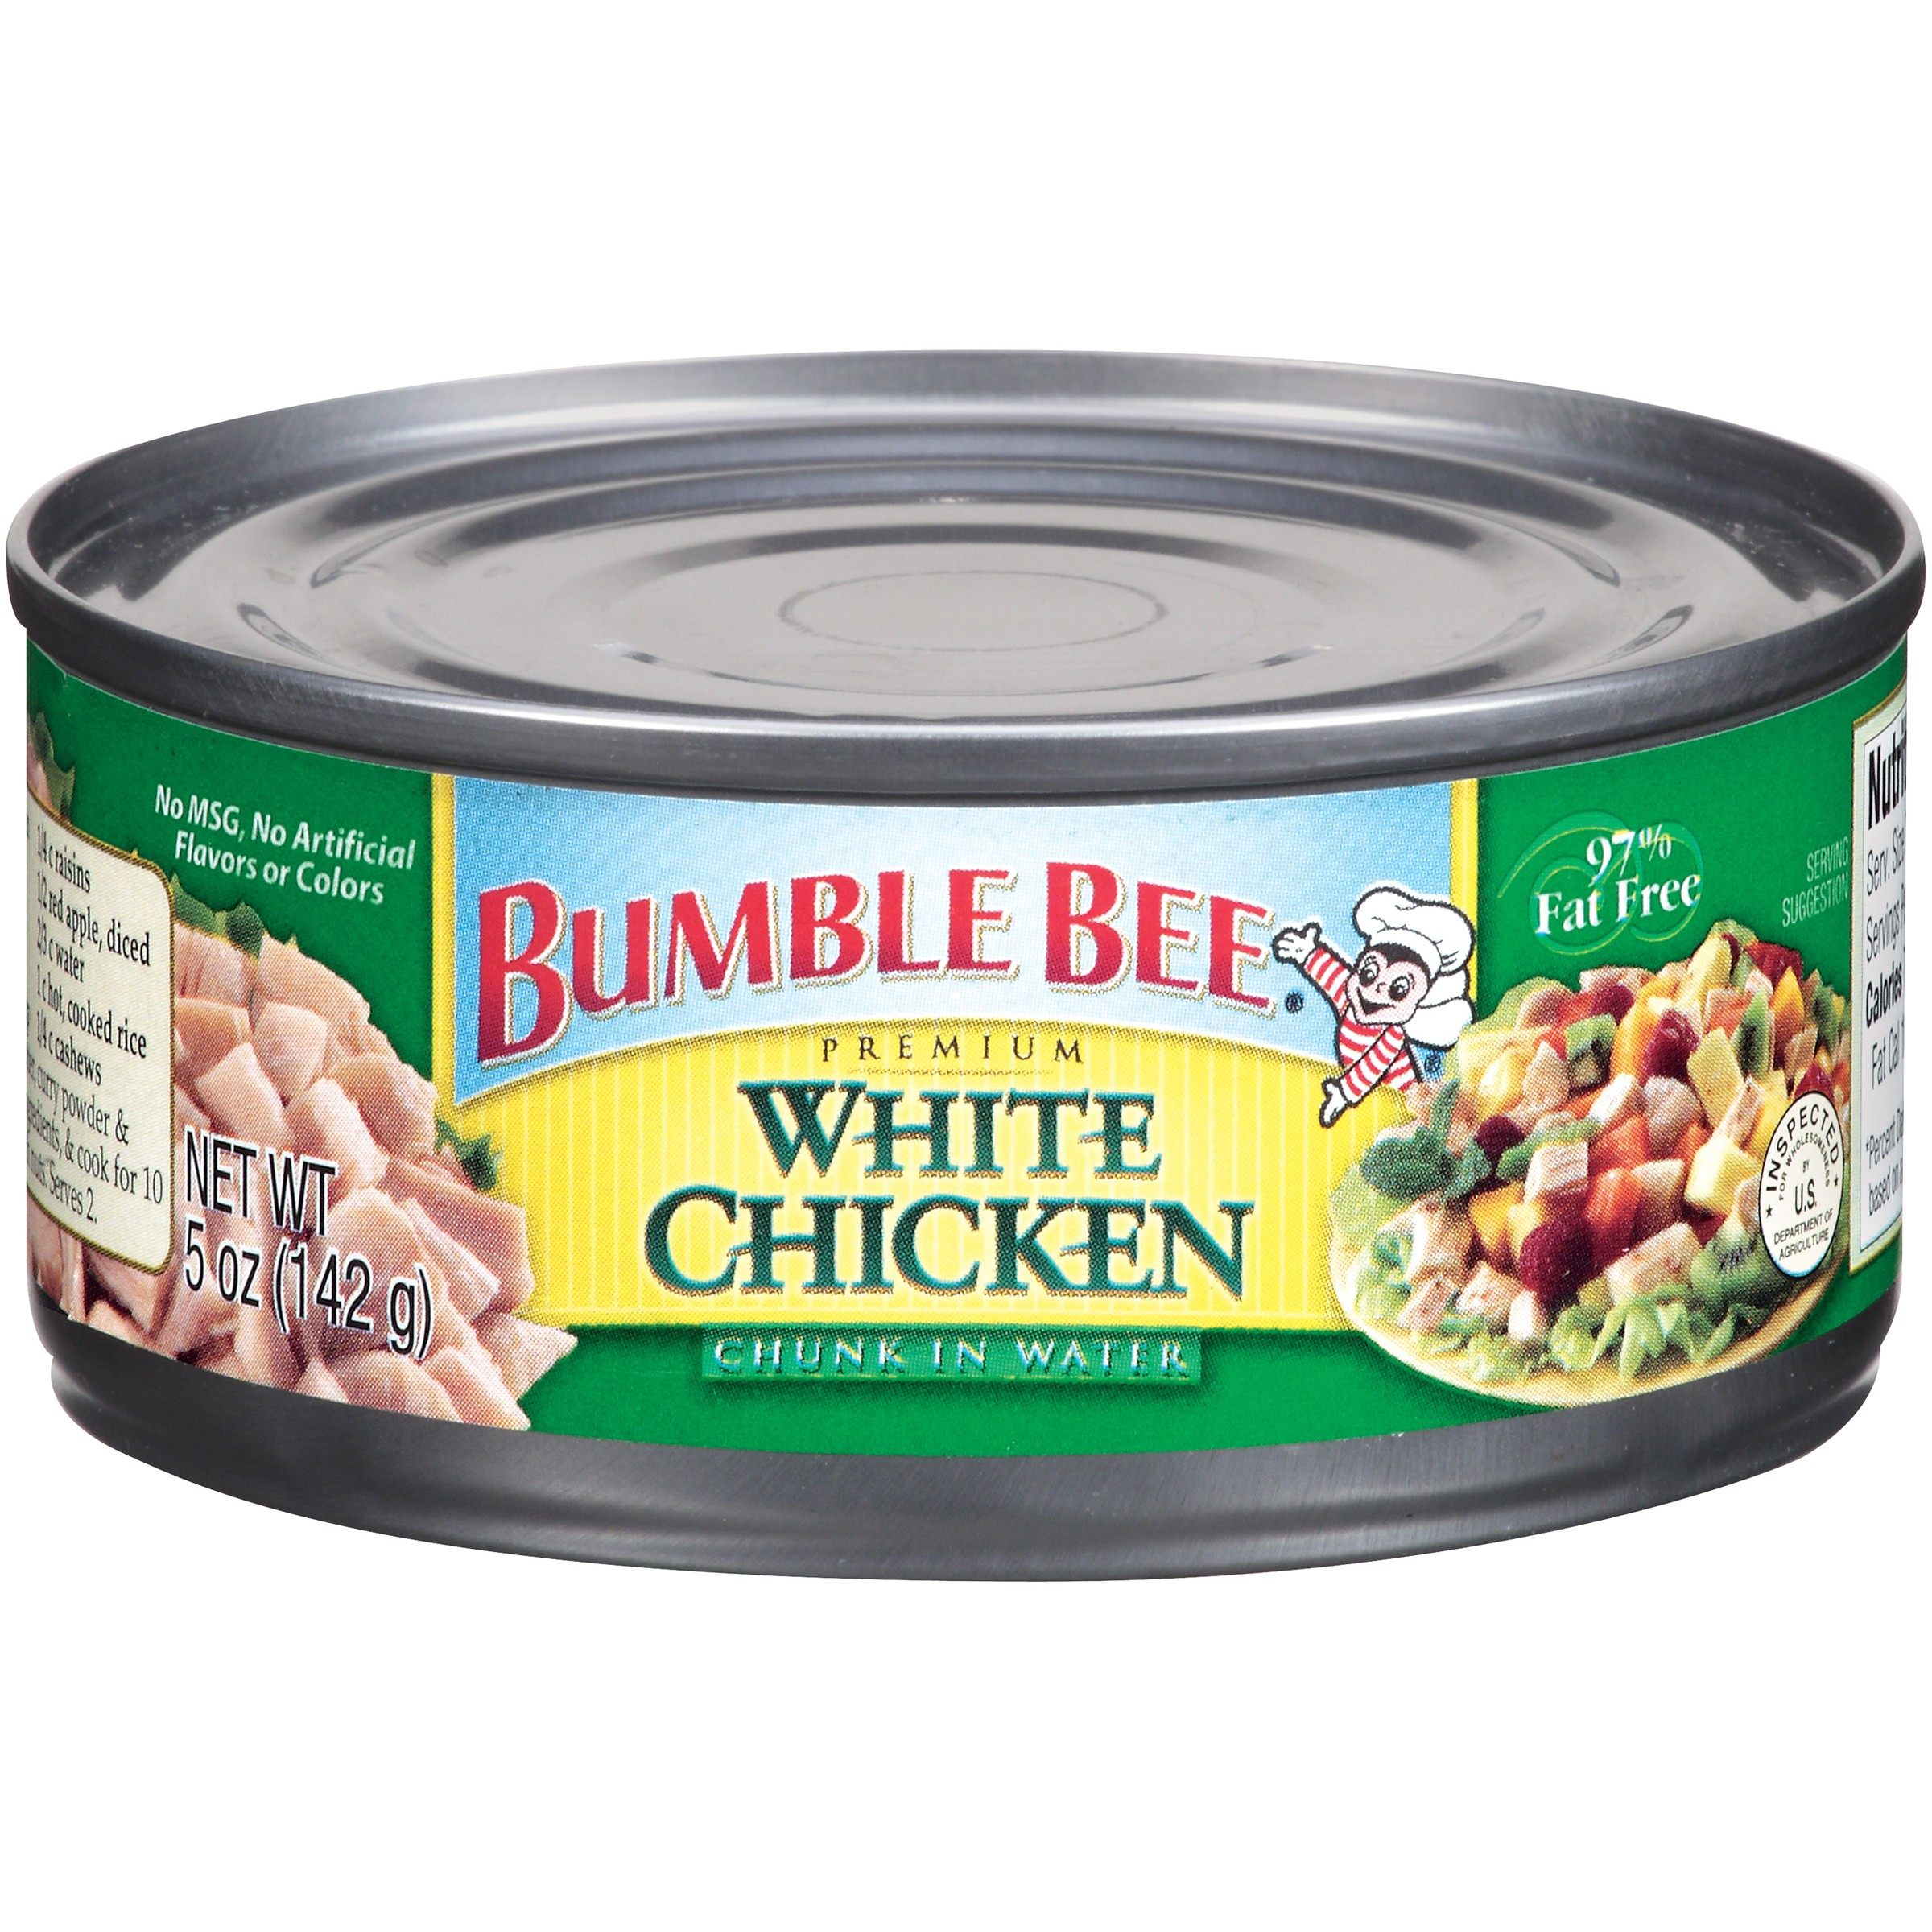 Bumble Bee Premium Chunk White Chicken in Water, 5 oz Can